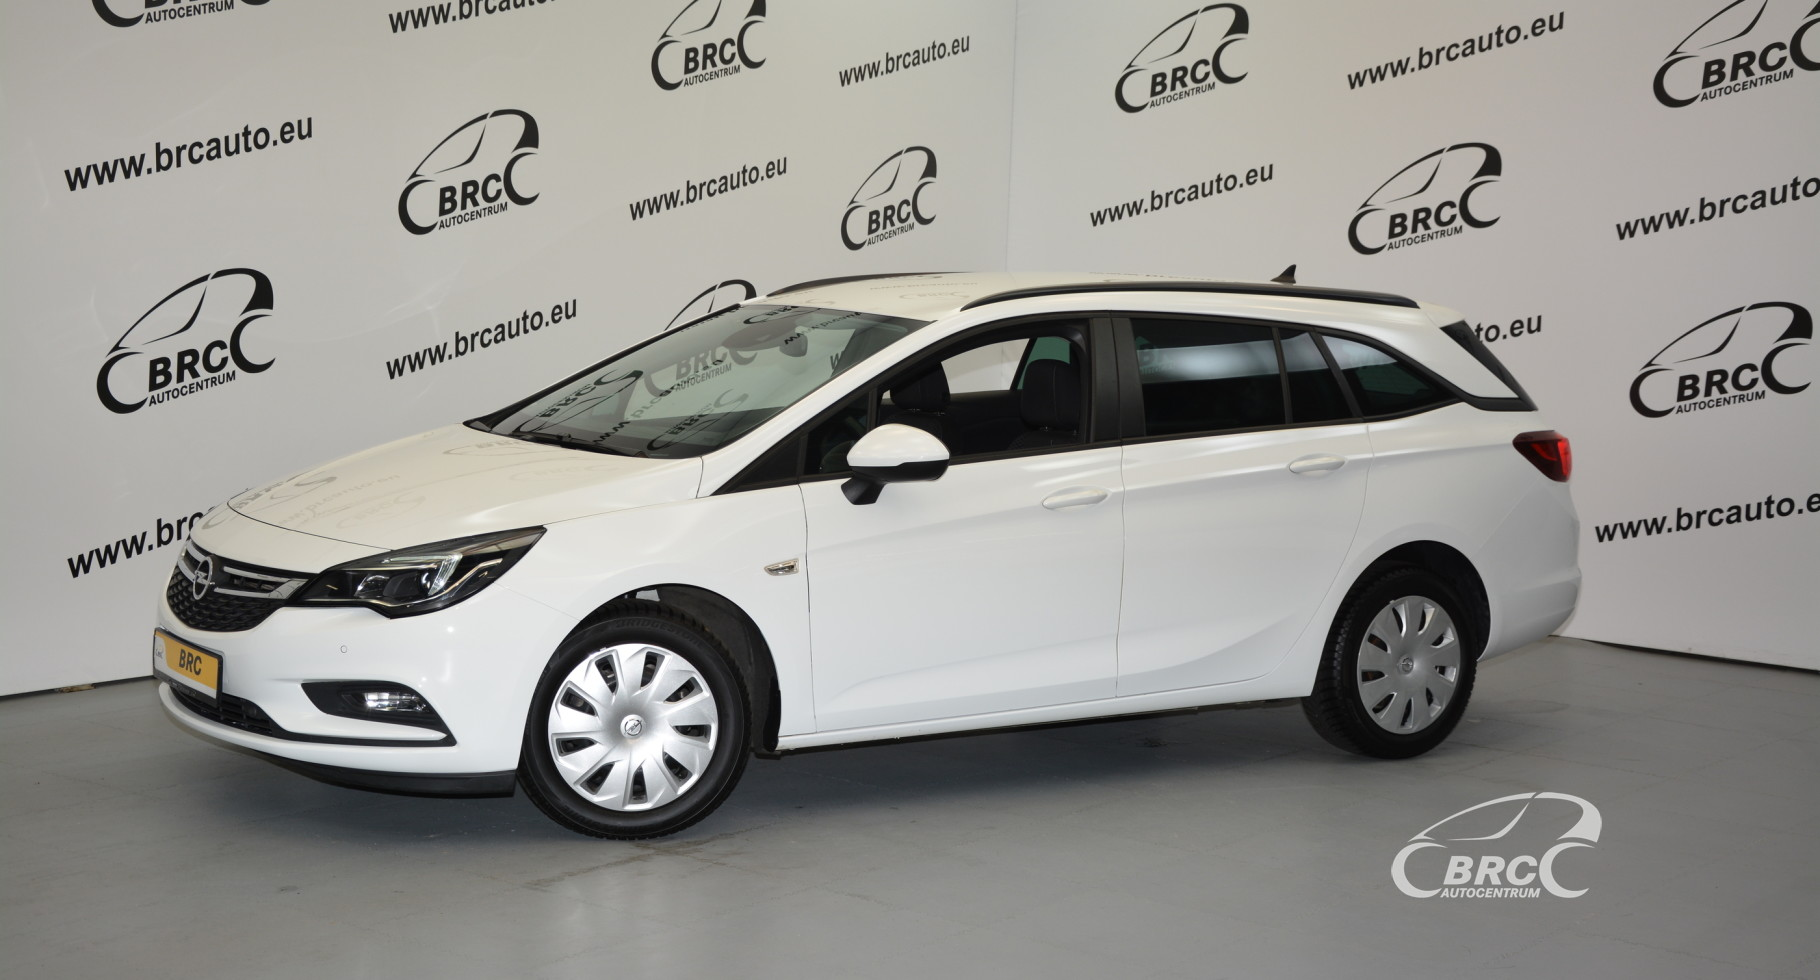 Opel Astra 1.6 CDTi Sports Tourer+